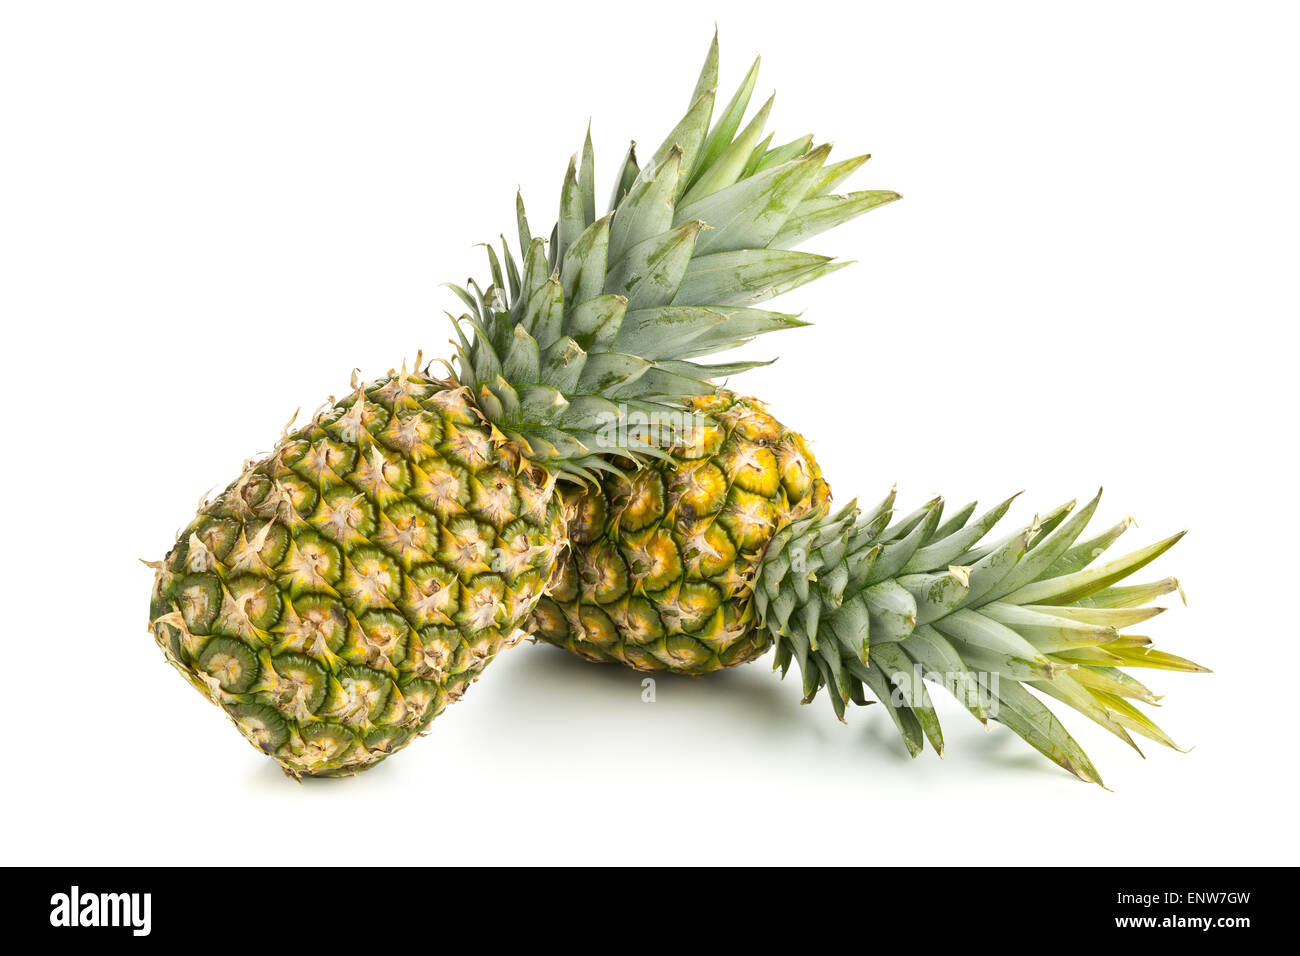 Two whole uncut pineapple fruit (ananas comosus) with green leaves over white background - Stock Image